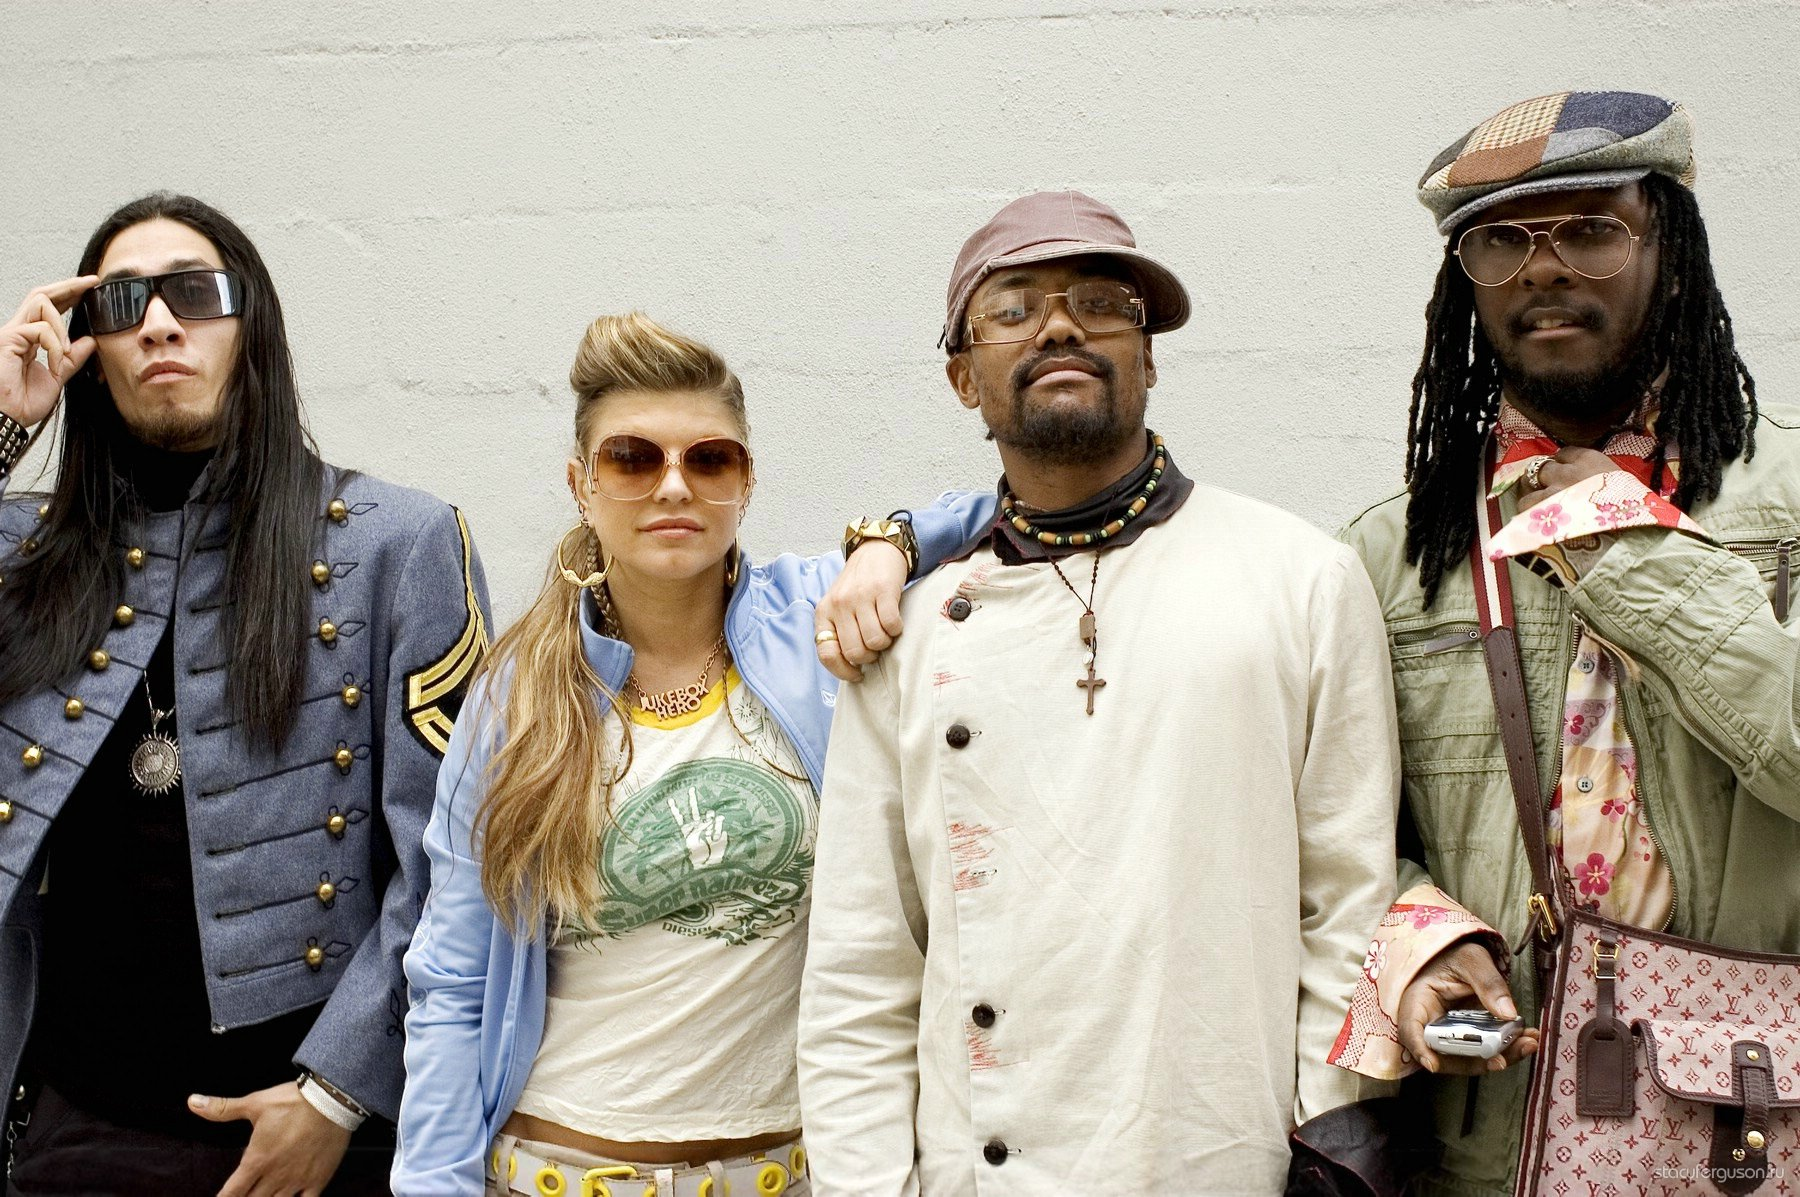 40 Best Black and White Photography examples from Black eyed peas members names and pictures